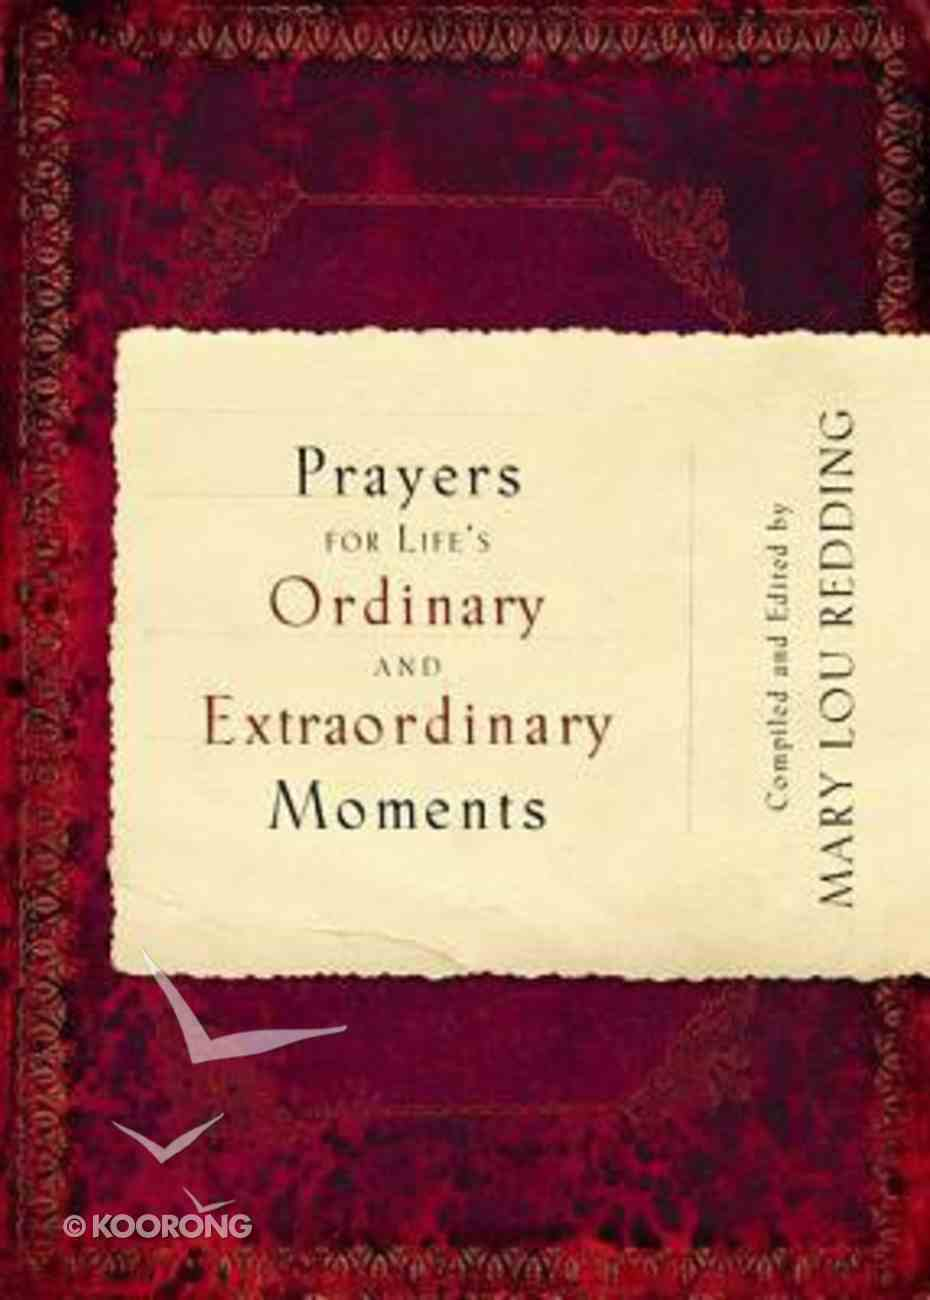 Prayers For Life's Ordinary and Extraordinary Moments Paperback